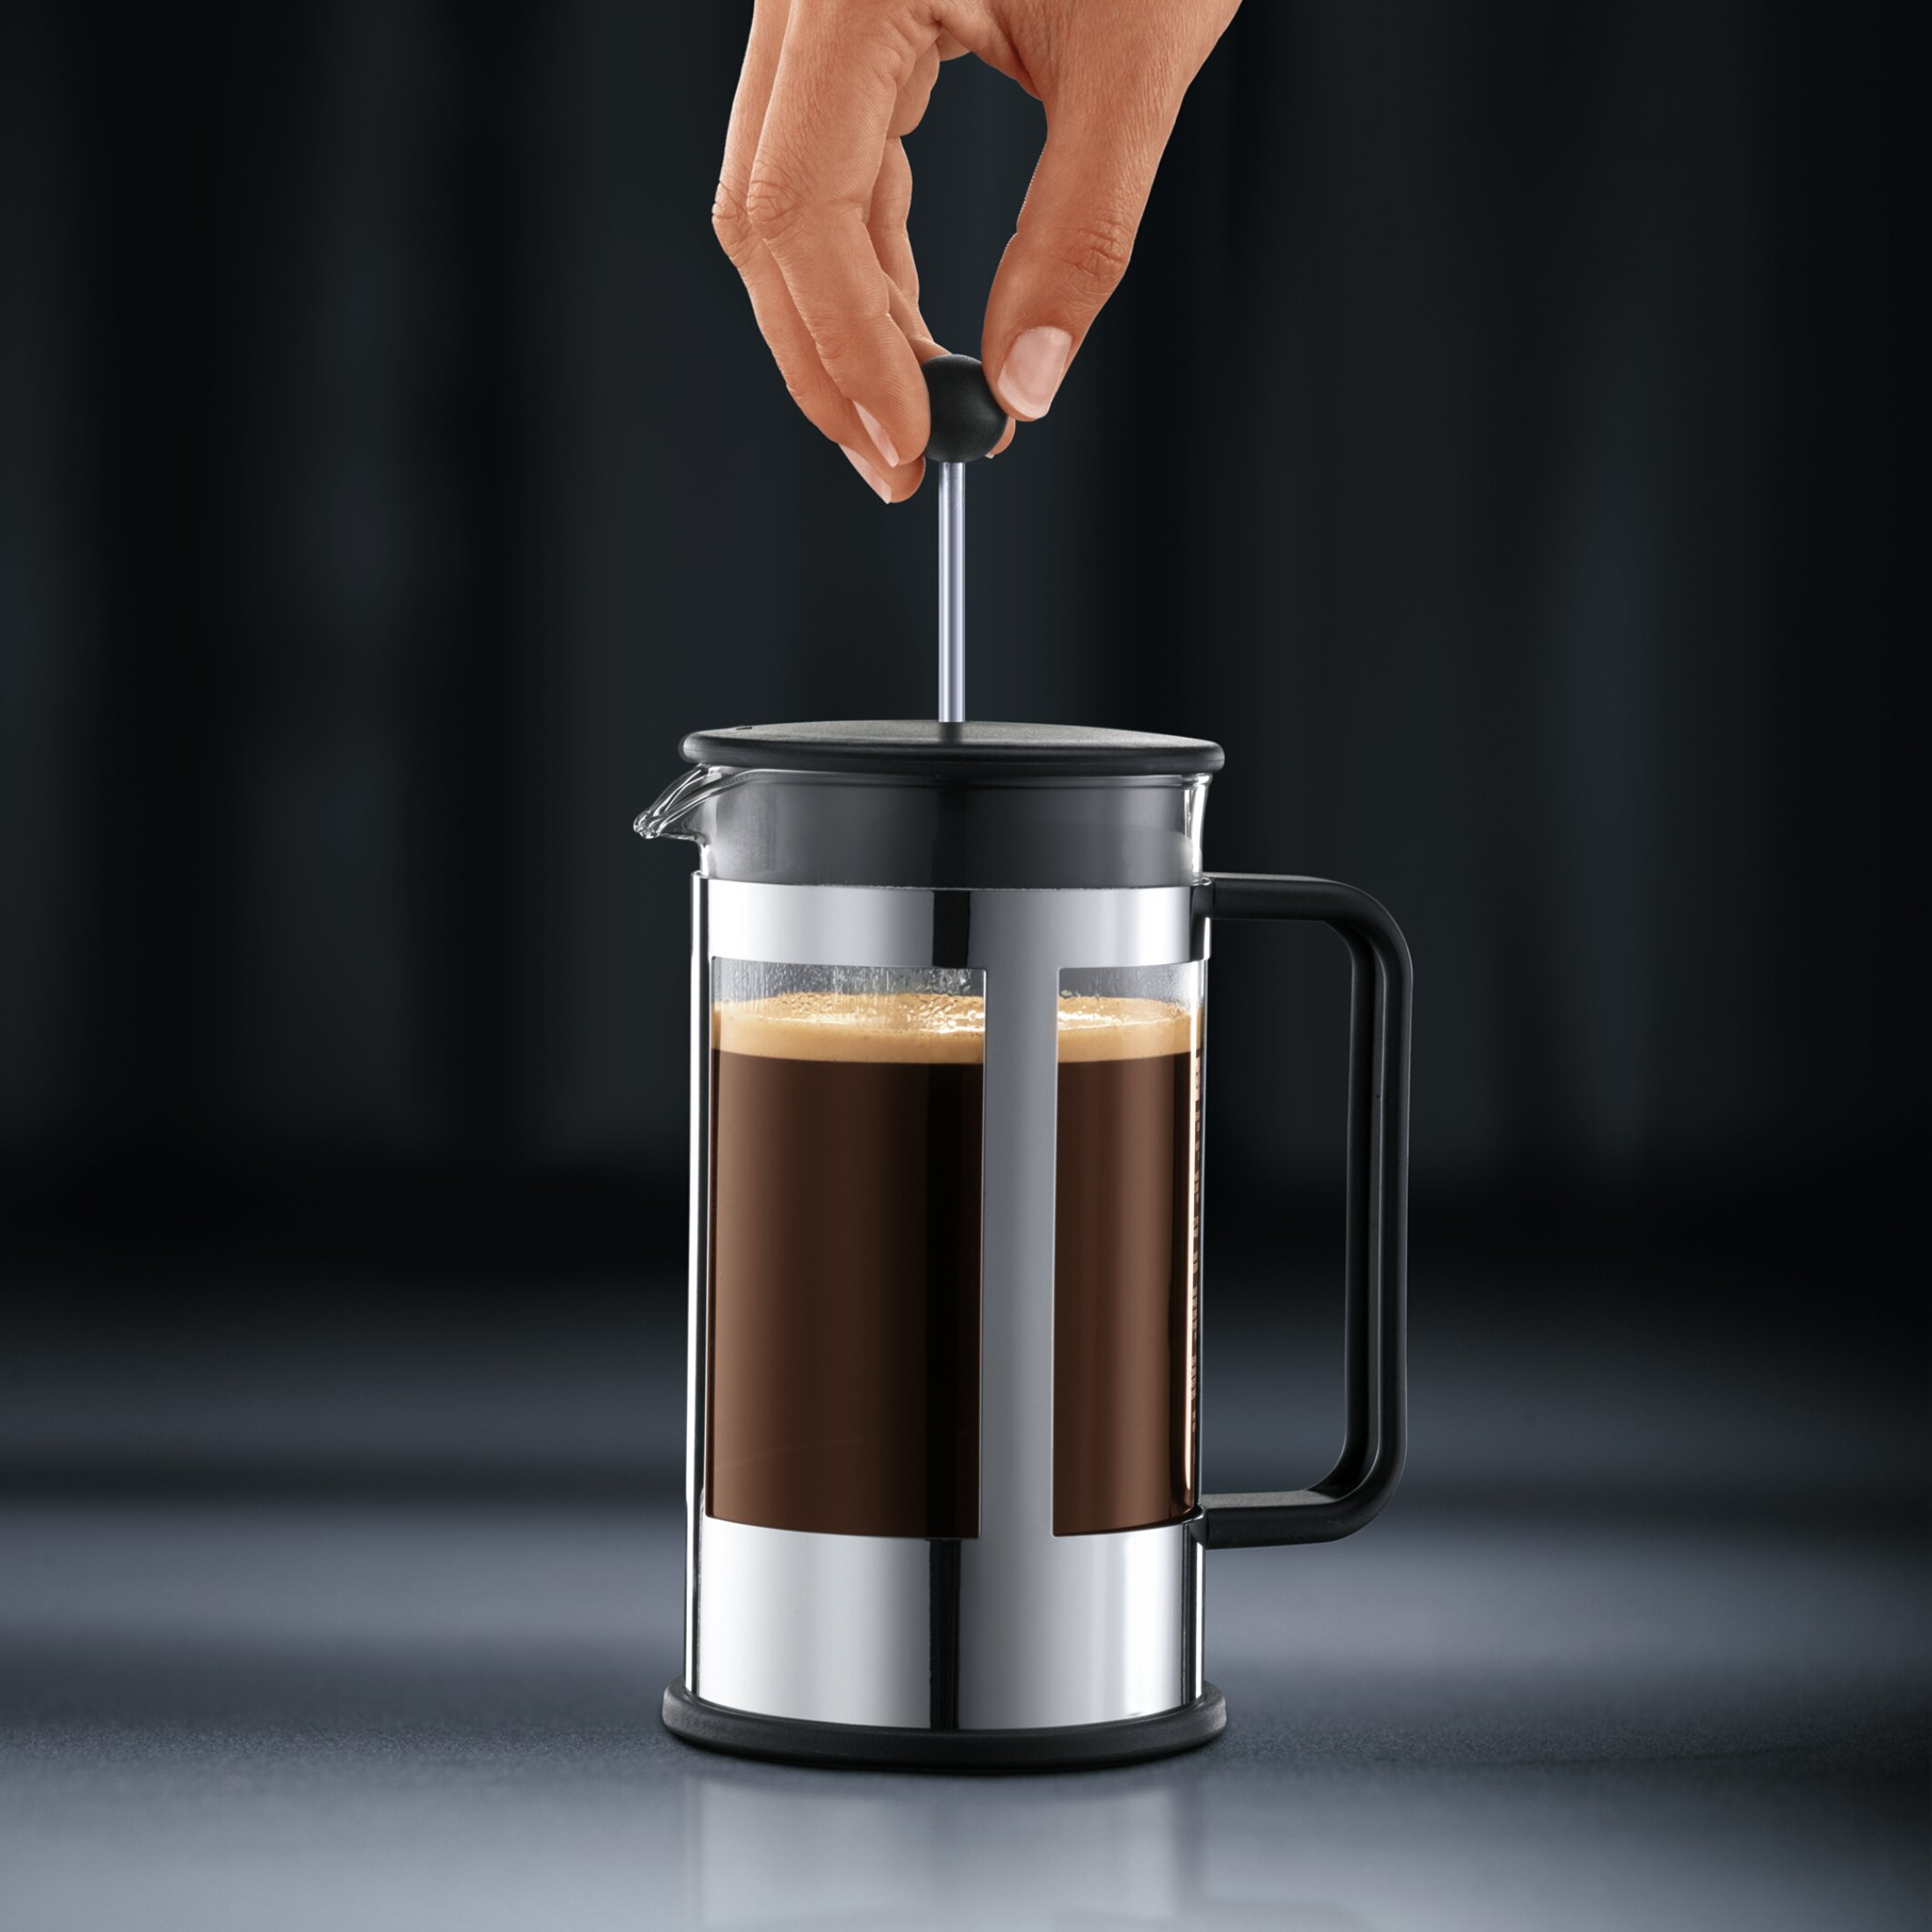 Bodum french press replacement glass - Bodum Kenya 8 Cup French Press Coffeemaker With Carafe